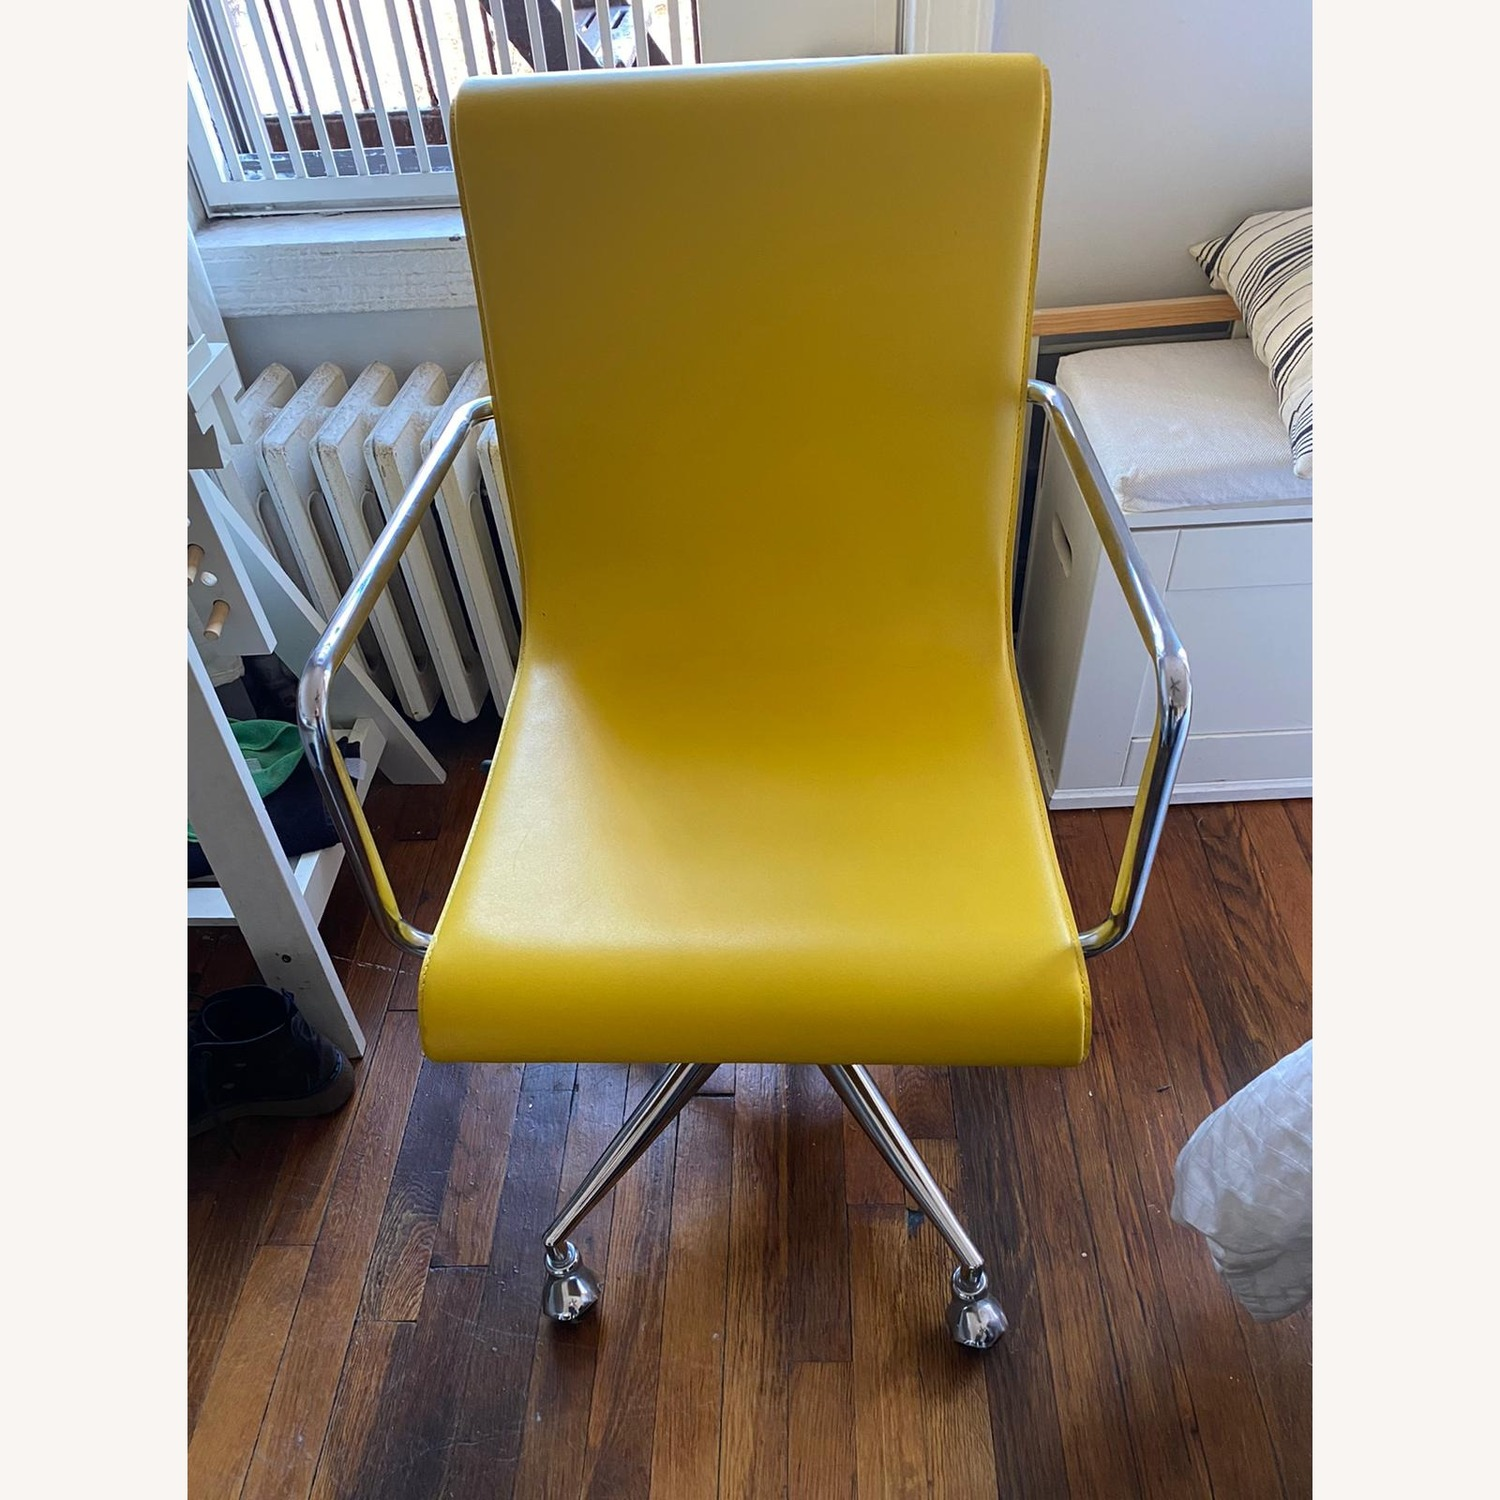 CB2 Chartreuse Leather Desk Chair